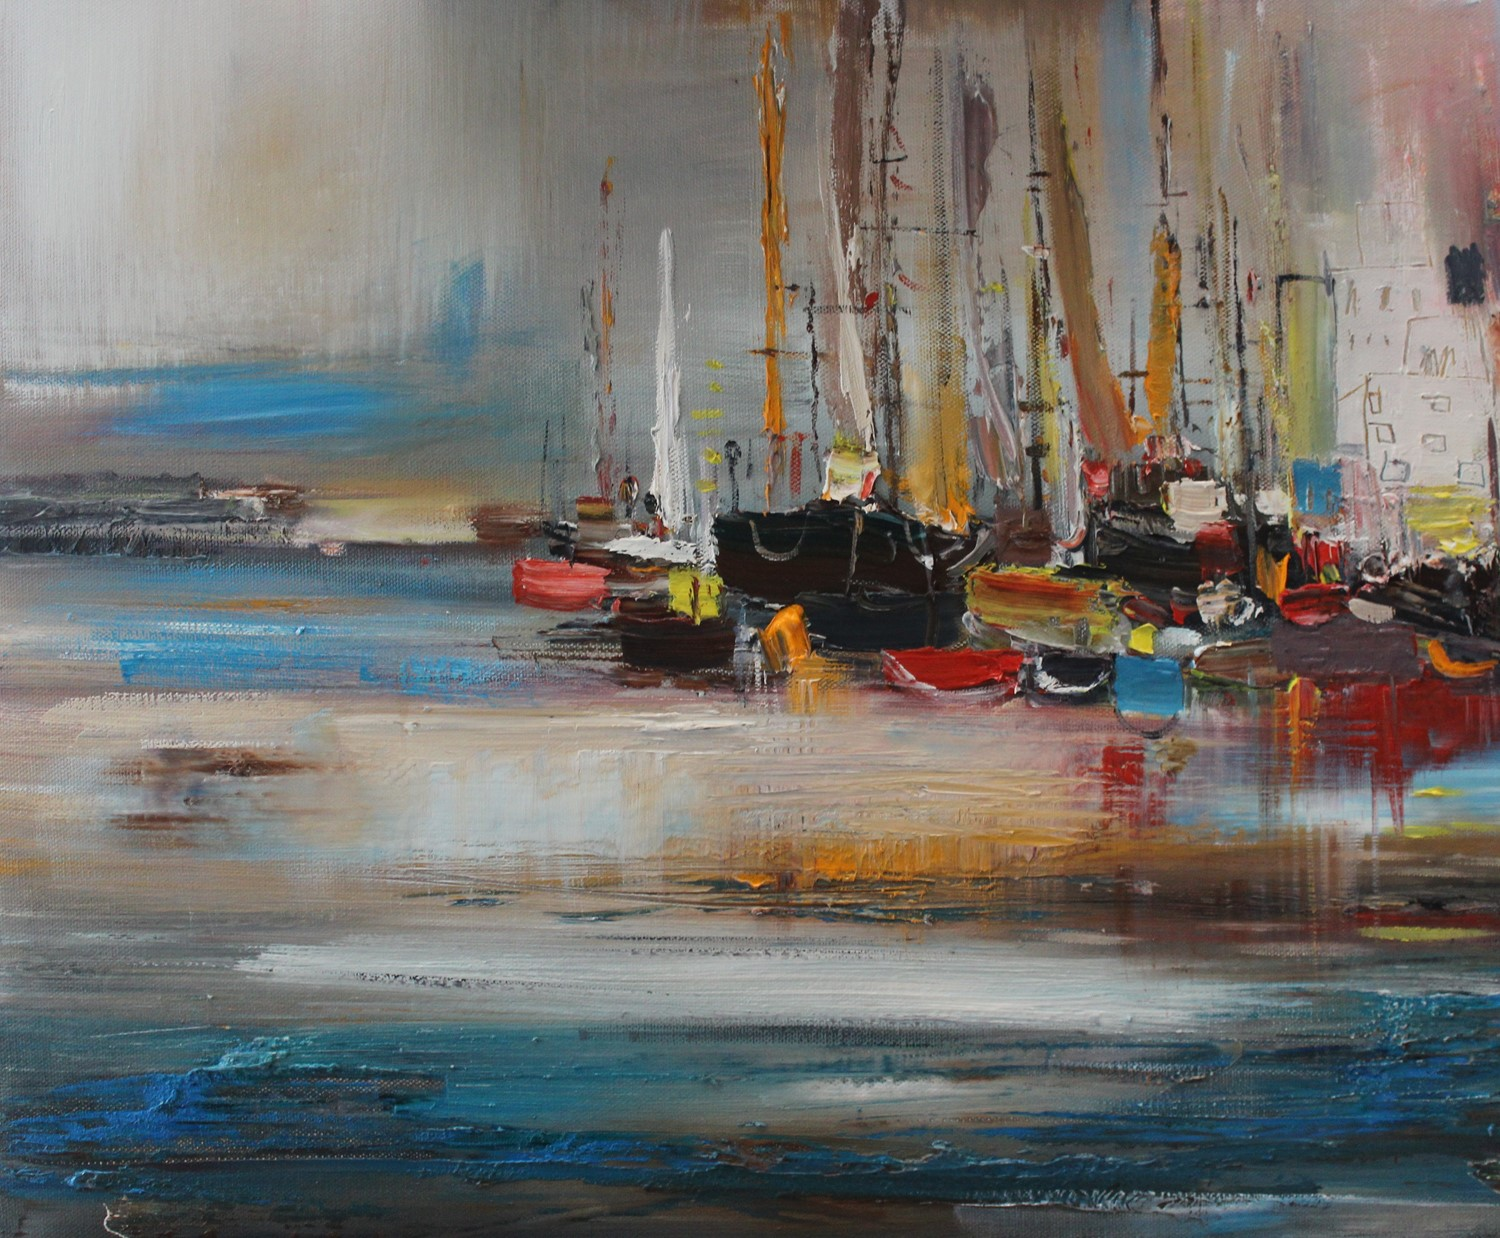 'Boats in Port' by artist Rosanne Barr